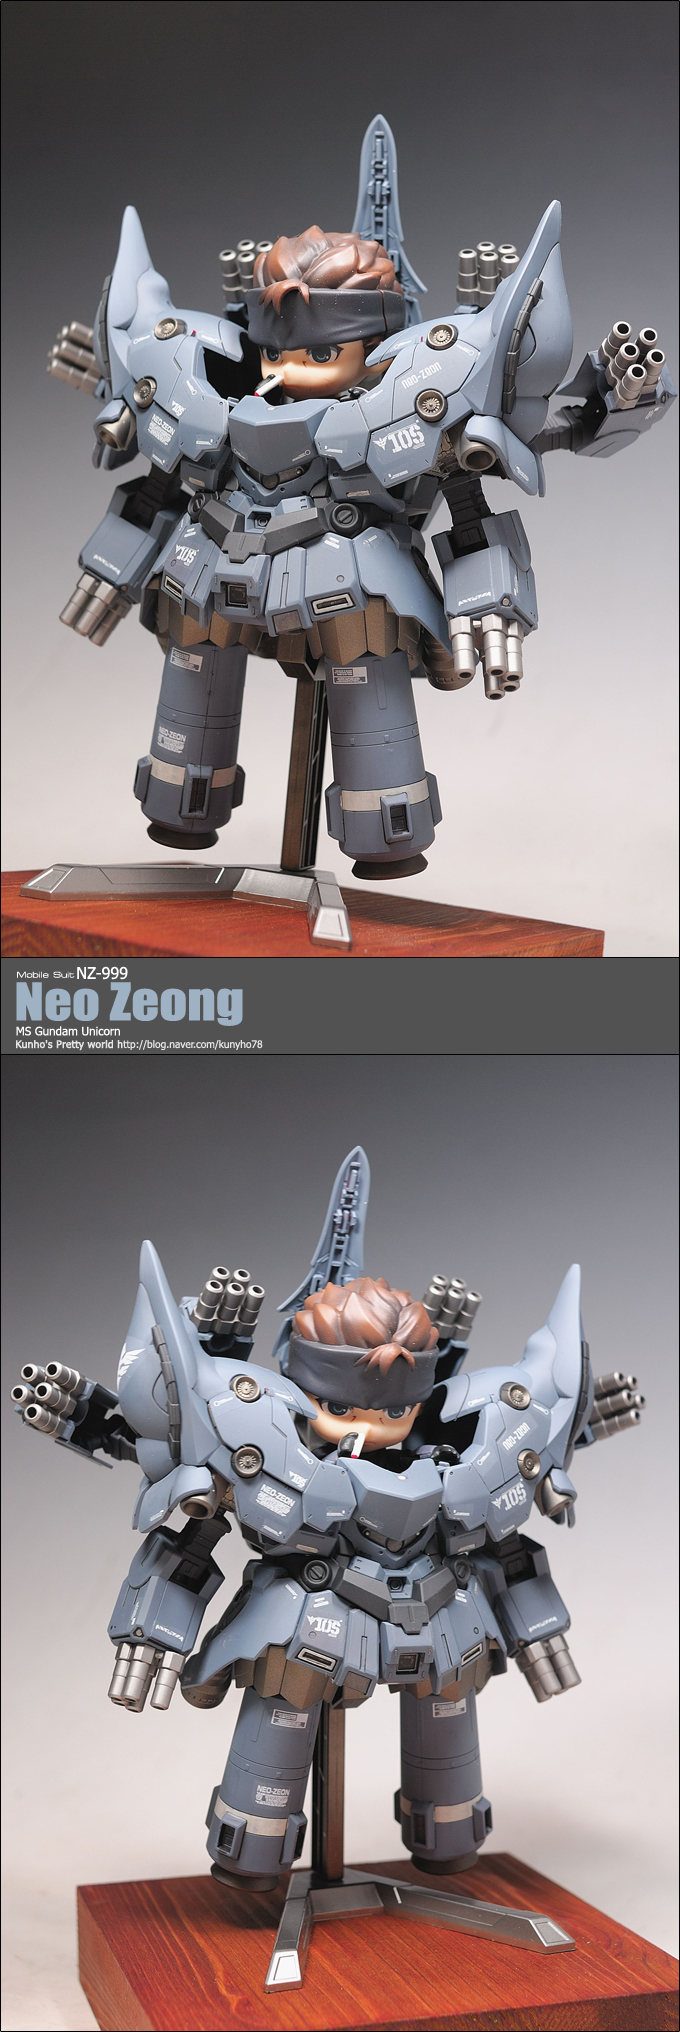 Metal Gear Solid SD Neo Zeong: Cute Work by kunyho78. Many Big Size Images